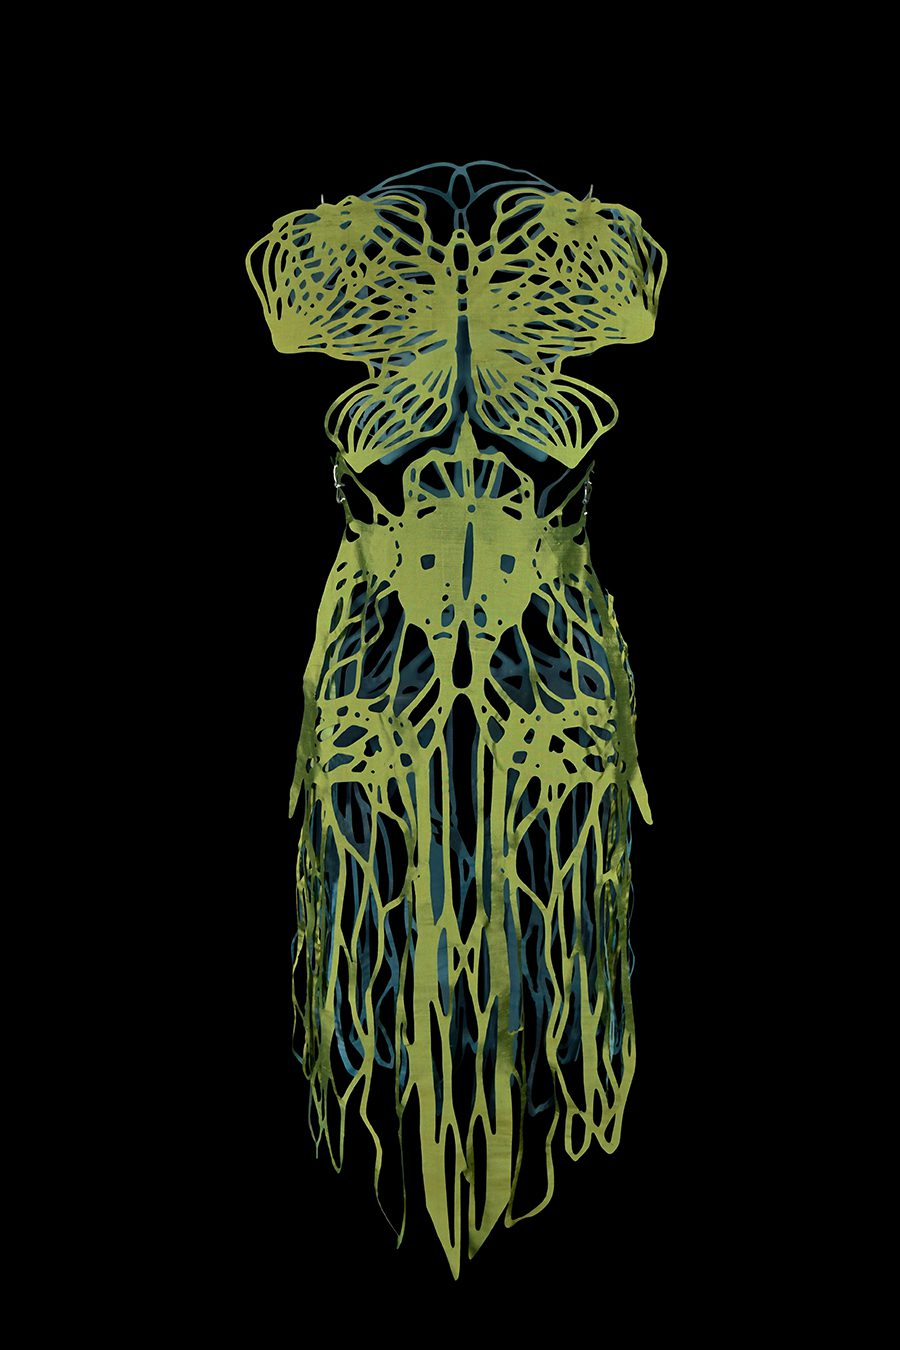 2017-Amy-Karle-Internal-Collection-green-silk-dress-based-on-ligaments-and-tendons01